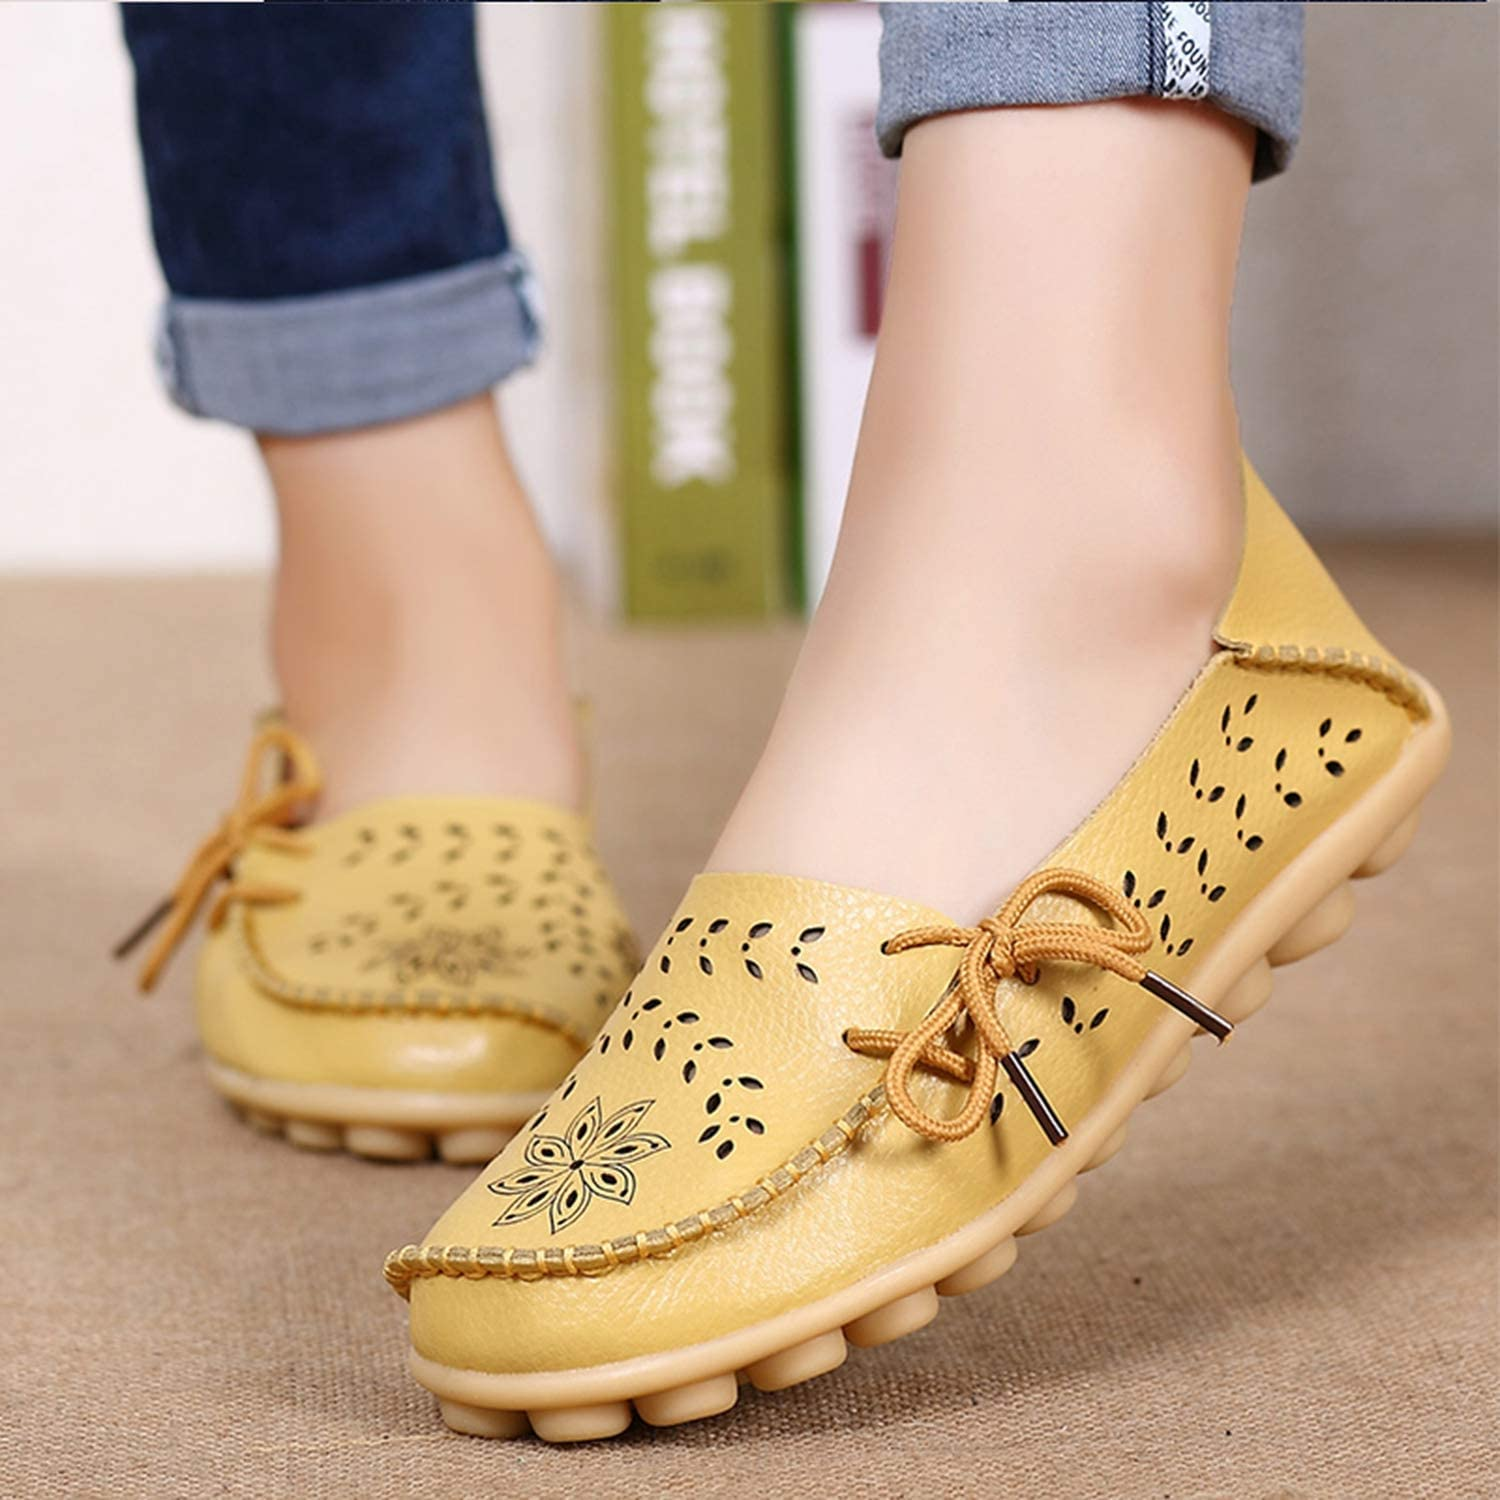 Be fearless Women PU Leather Flat Shoes Ladies Fashion Rivet Slip On Pointed Toe Crystal Rivet Casual Single Shoes